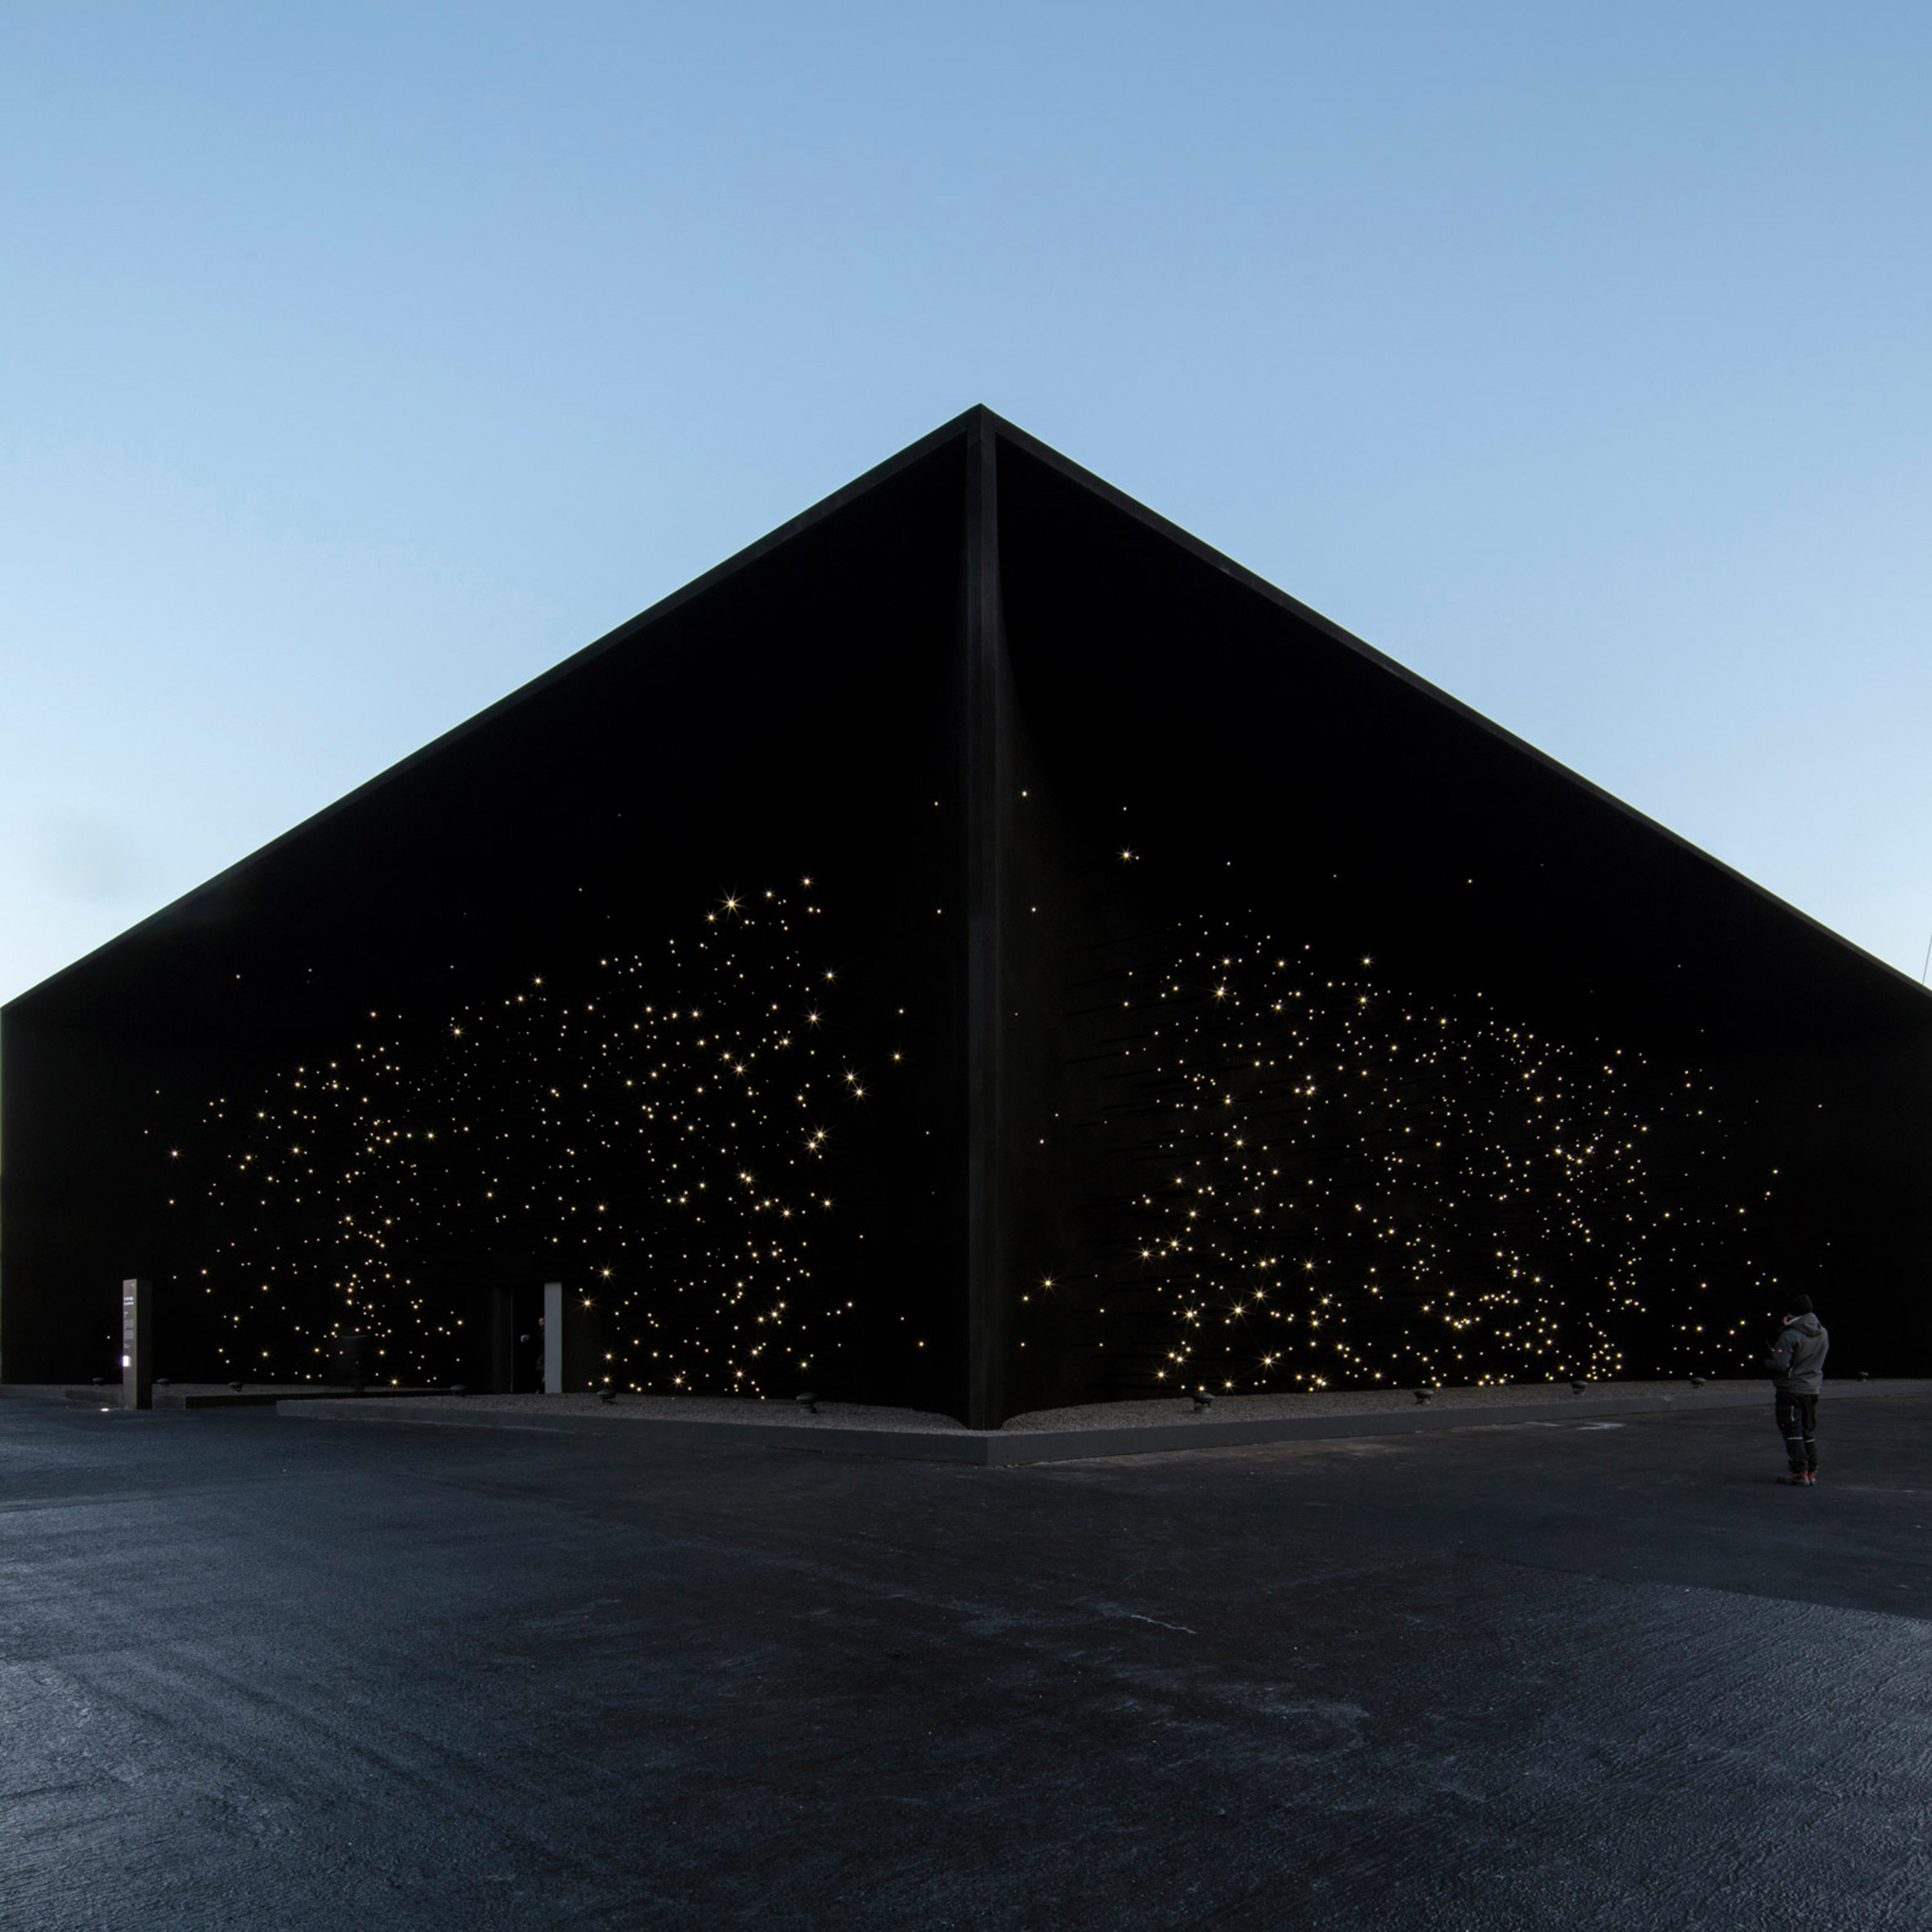 Asif Khan Reveals Super Dark Vantablack Pavilion For Winter Olympics 2018